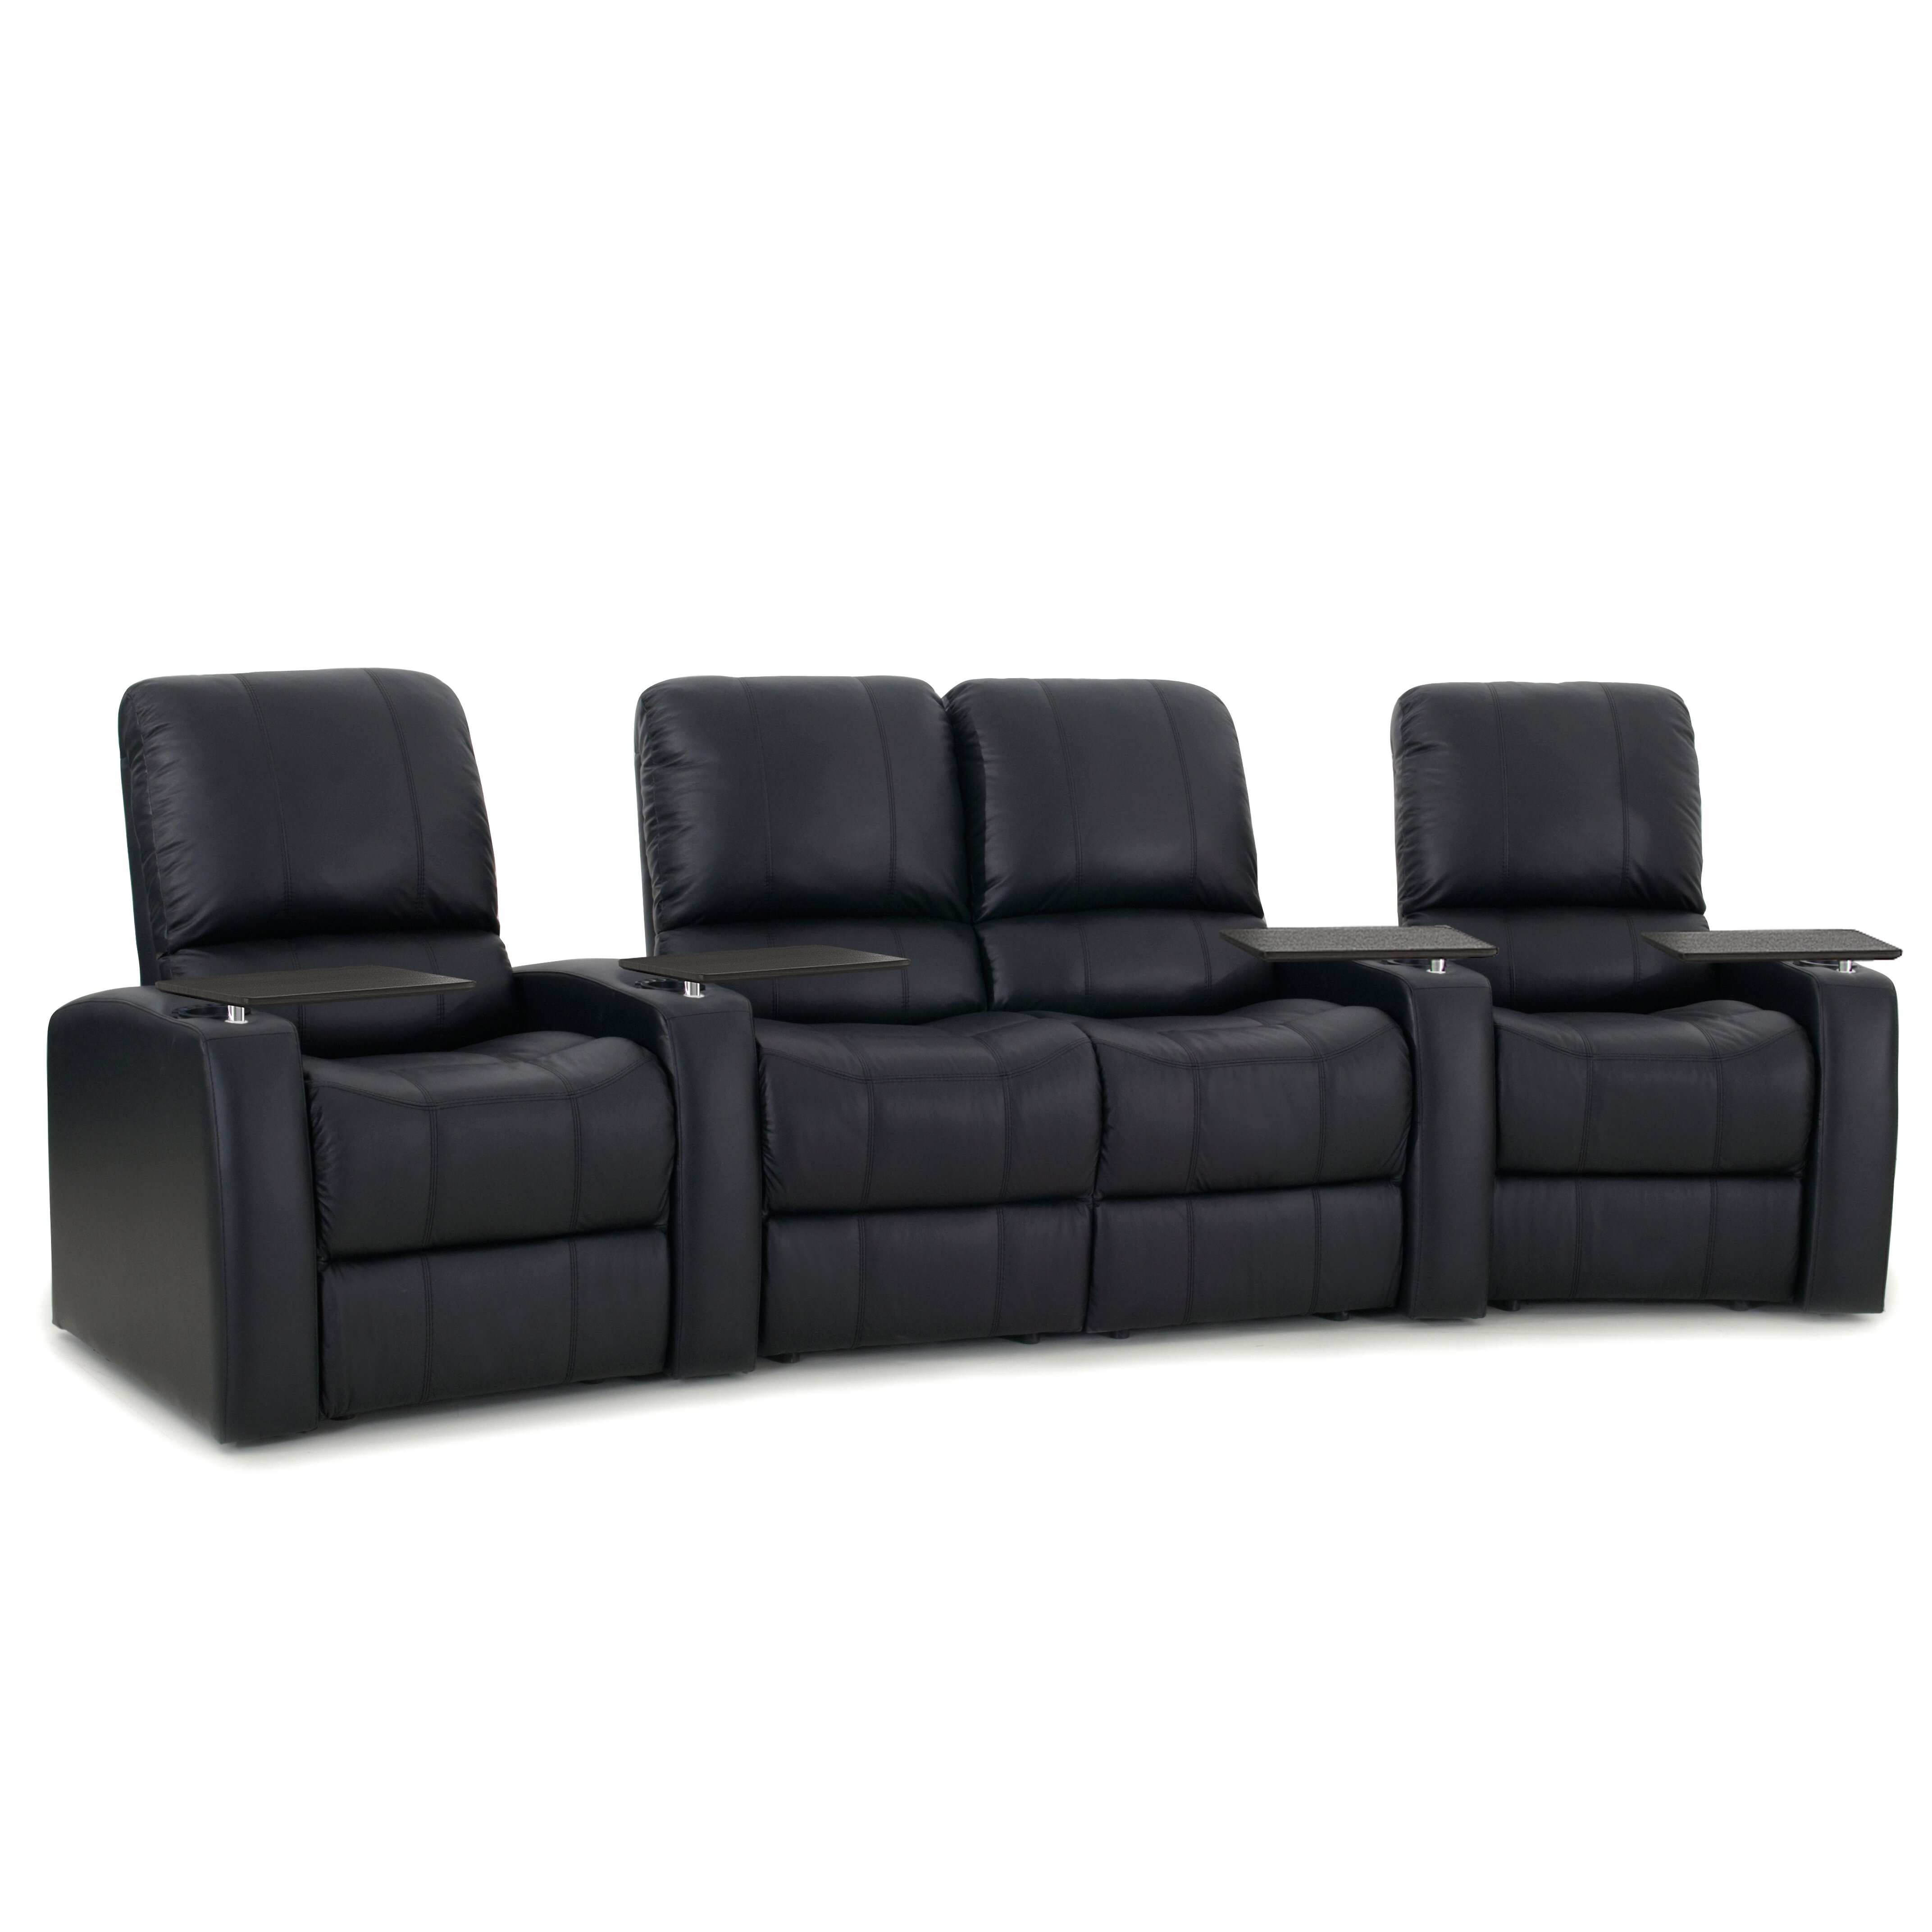 Octaneseating Blaze Xl900 Home Theatre Loveseat Row Of 4